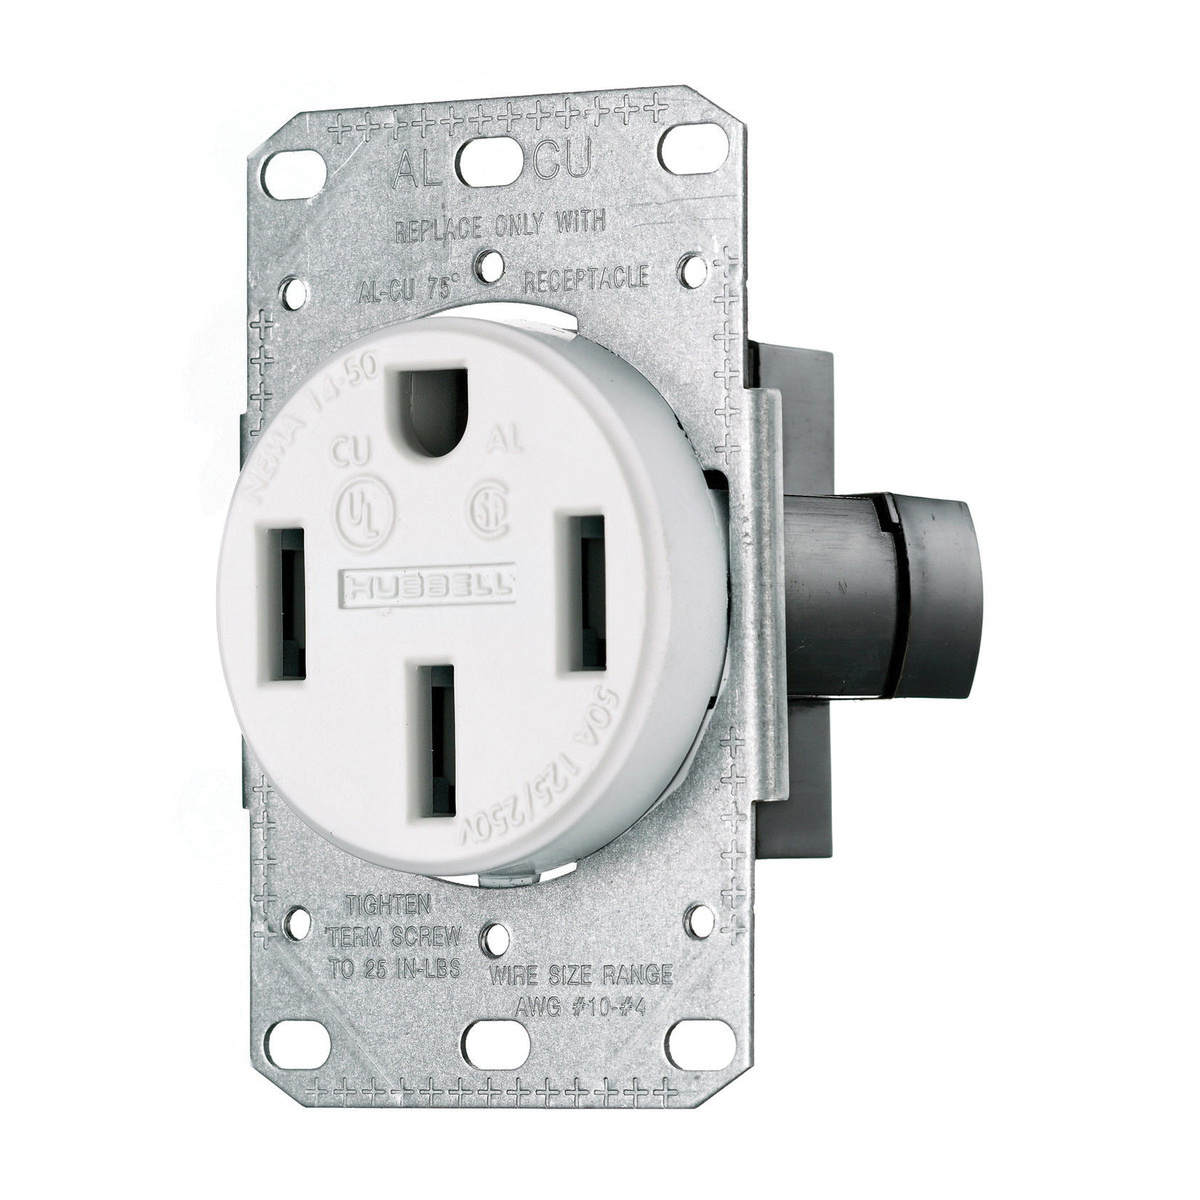 Nema 14 50r >> Hubbell Wiring Rr450fw Smooth Face Straight Blade Single Receptacle 3 Pole 4 Wire 125 250 Volt 50 Amp Nema 14 50r Black Tradeselect